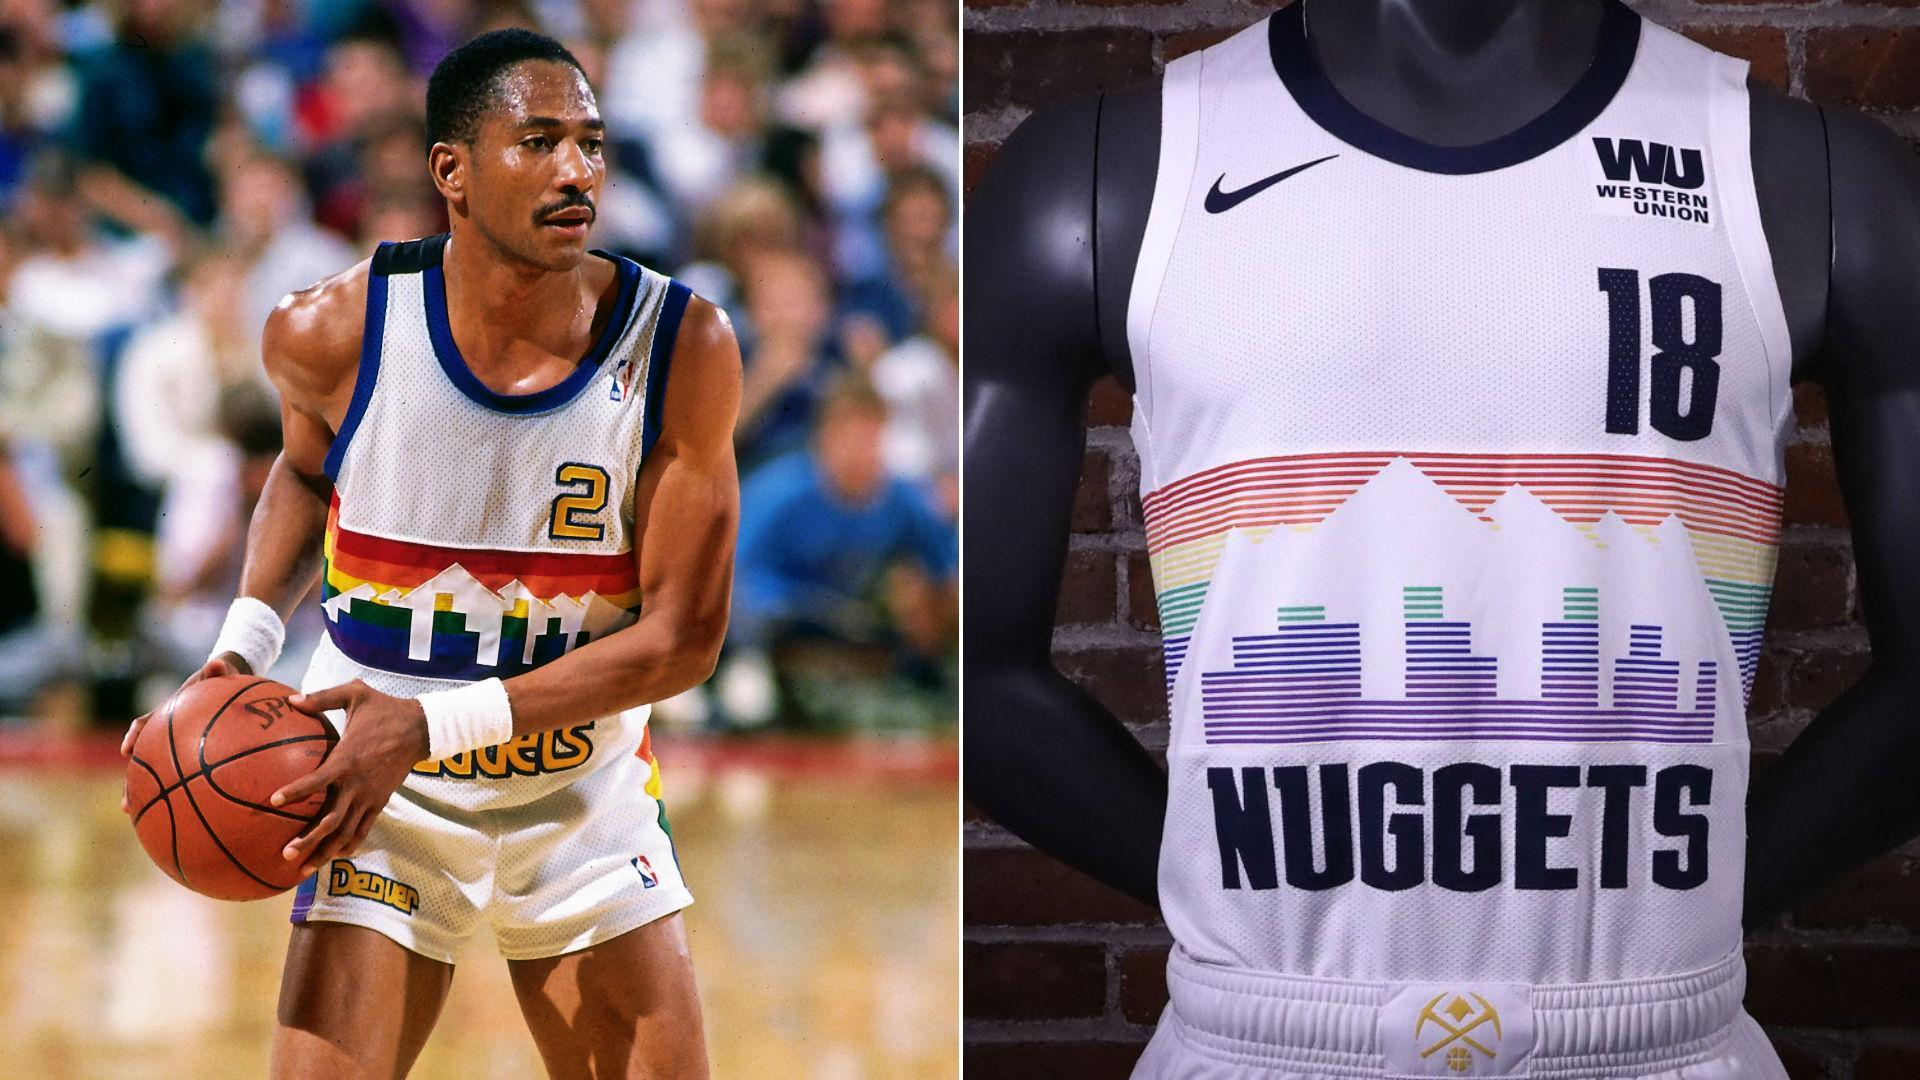 5169a1eb0ce The Nuggets have a City Edition uniform that calls back to their look of  the 1980s.